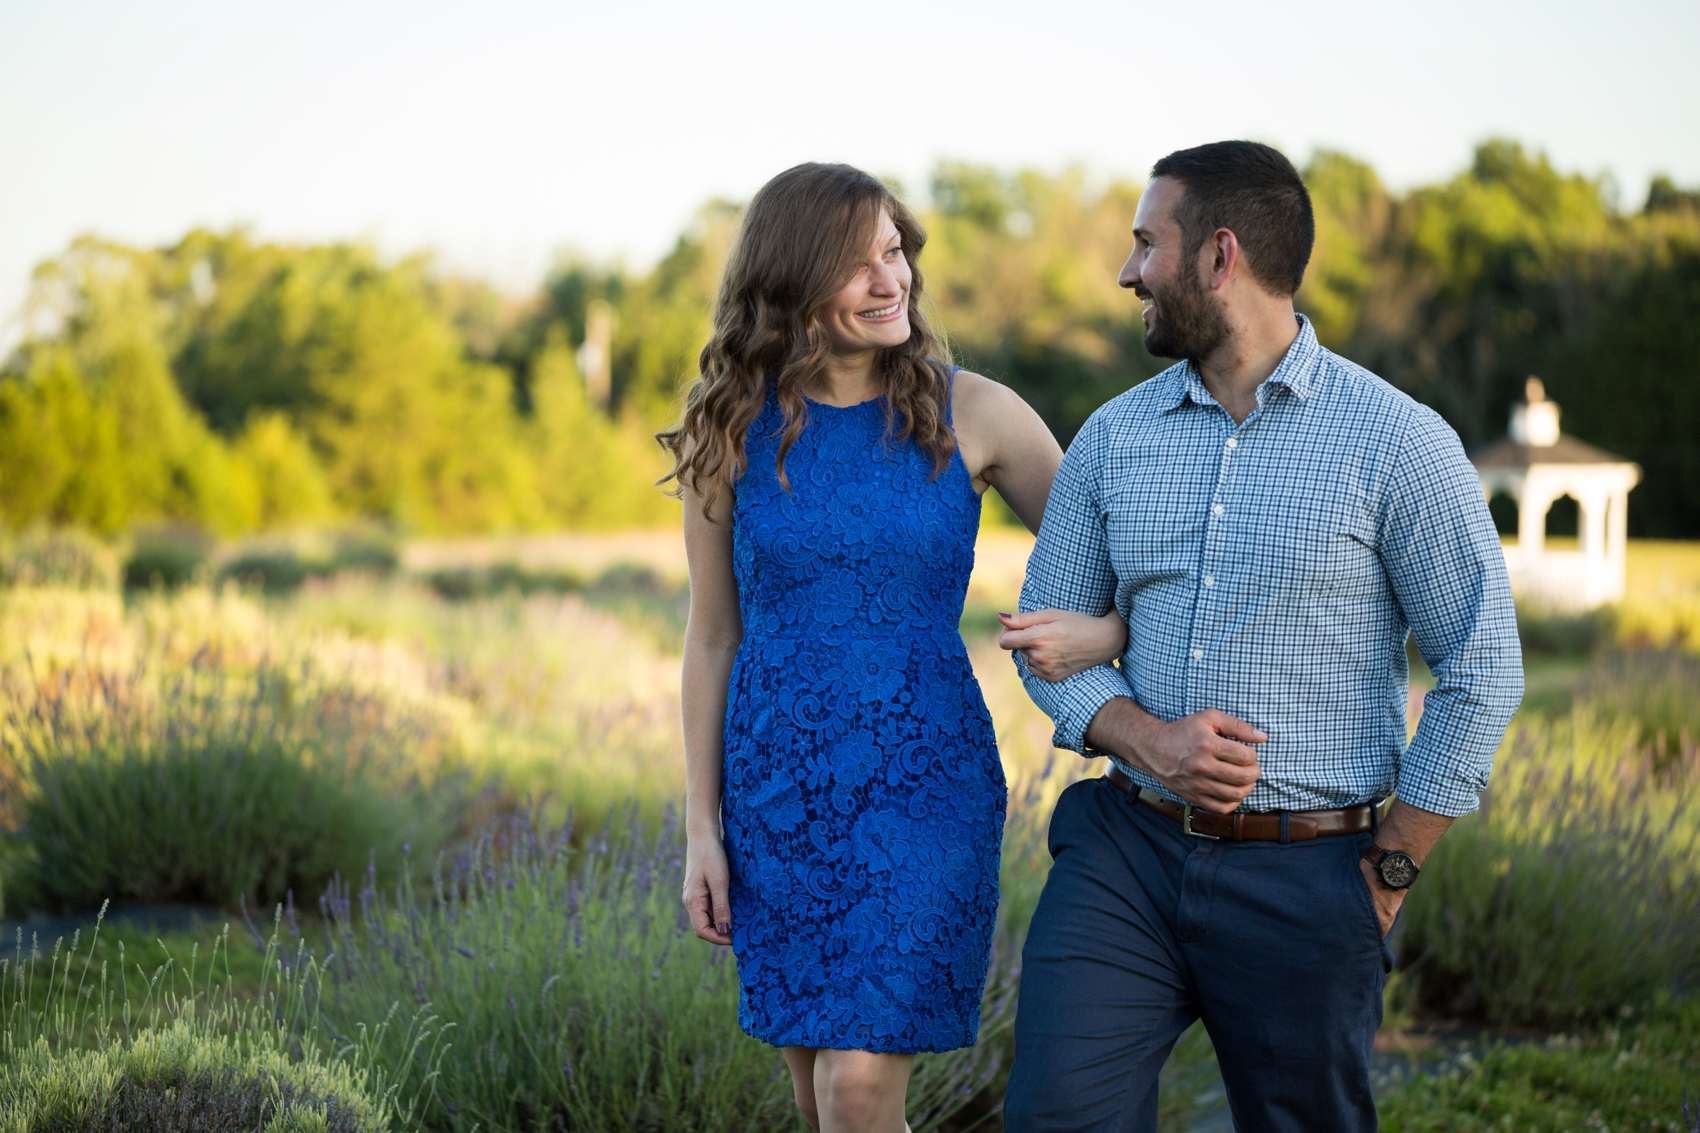 Seven-Oaks-Lavender-Farm-Engagement-Session-2019-0256.jpg